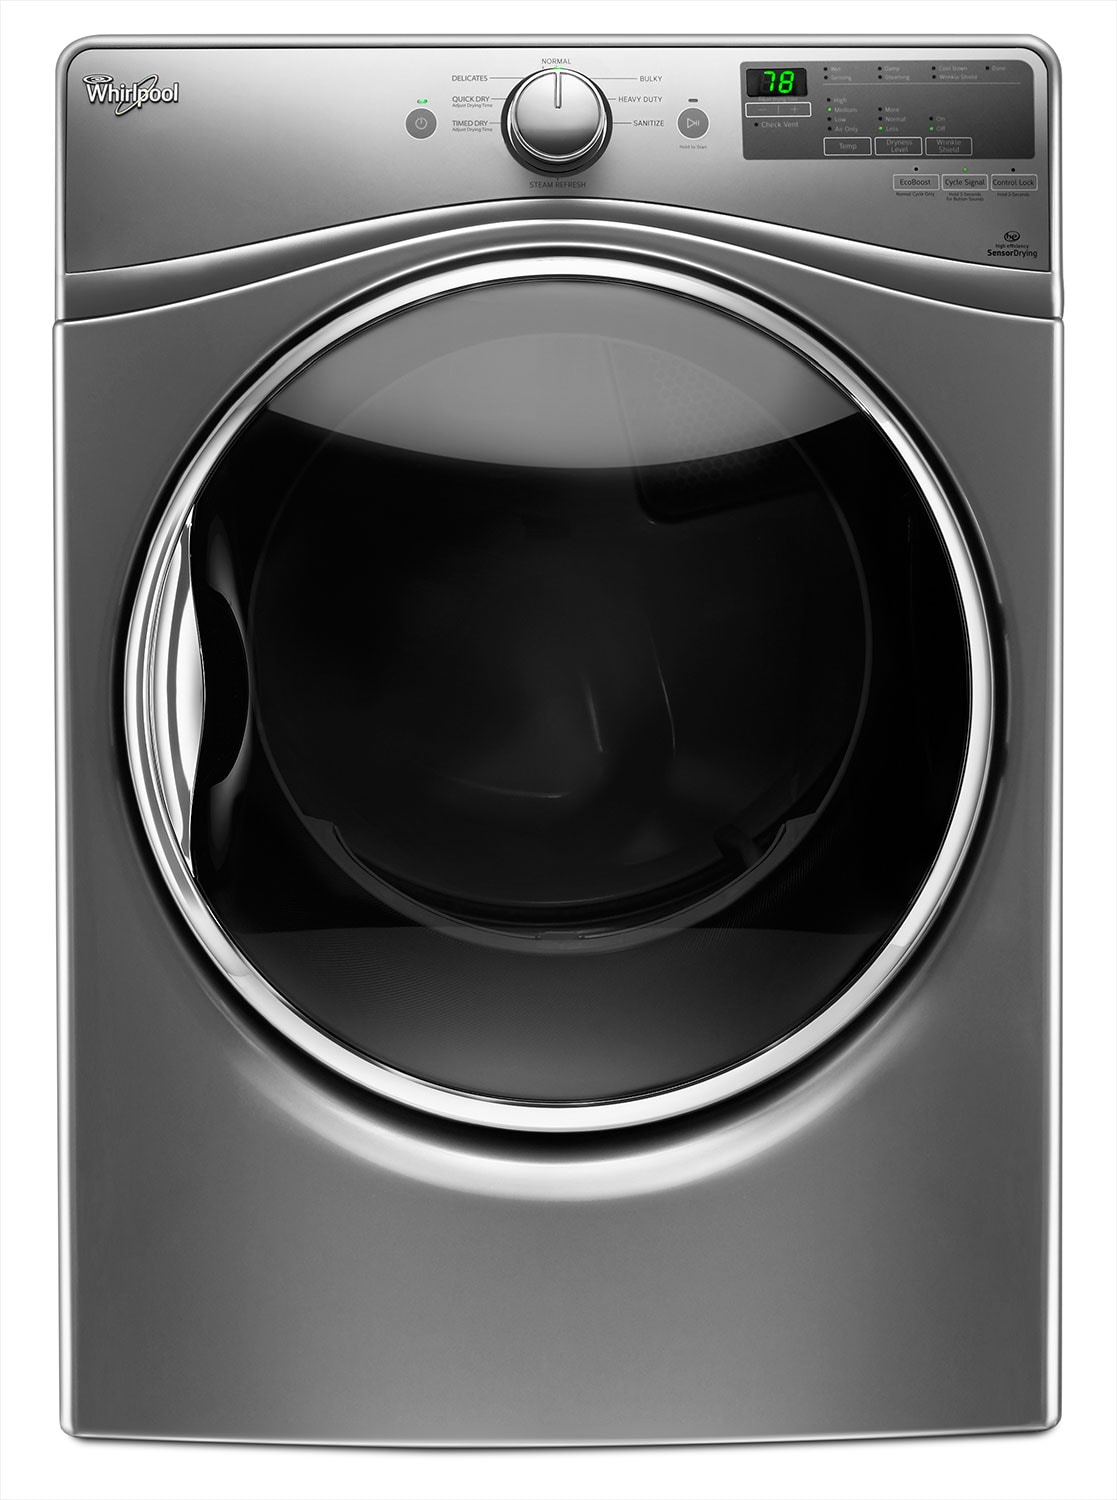 Whirlpool Chrome Shadow Gas Dryer 7 4 Cu Ft